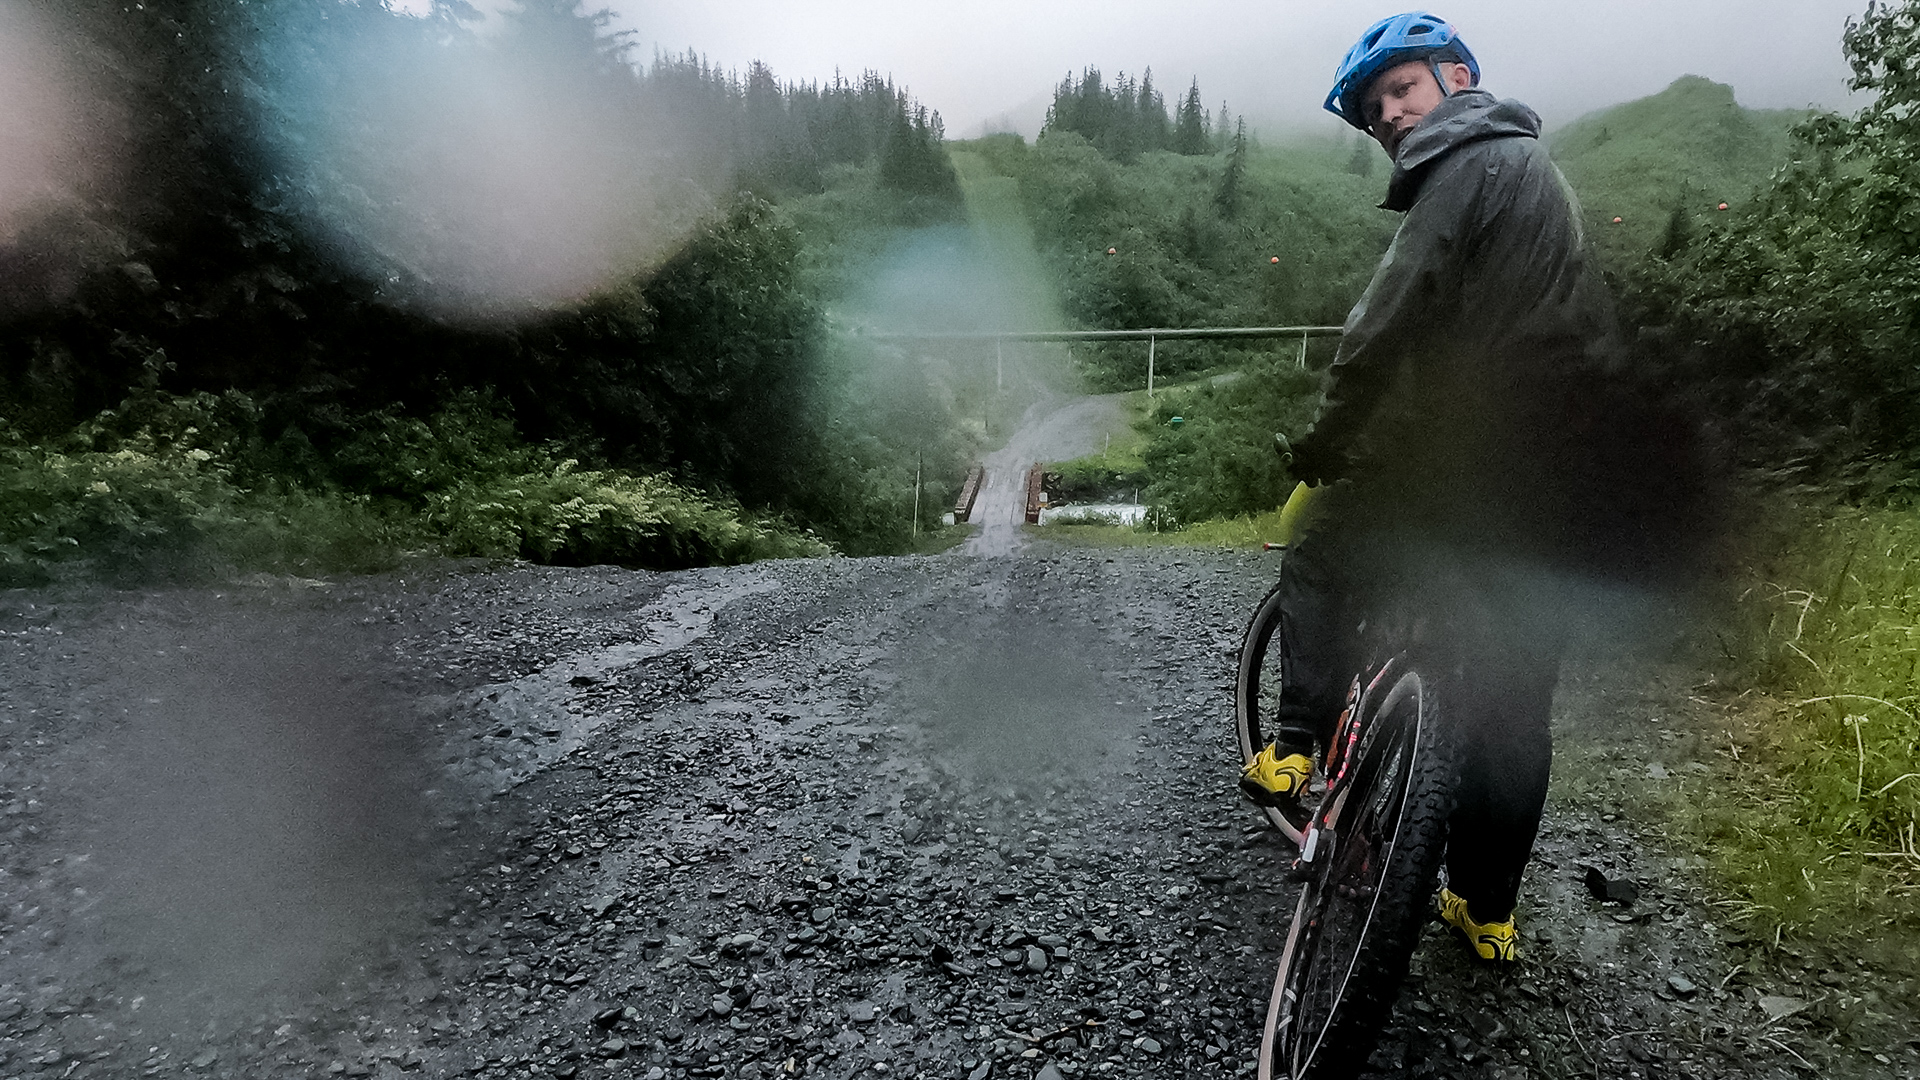 Bikepacking Alaska | Pedaling the Pipeline access roads and trails